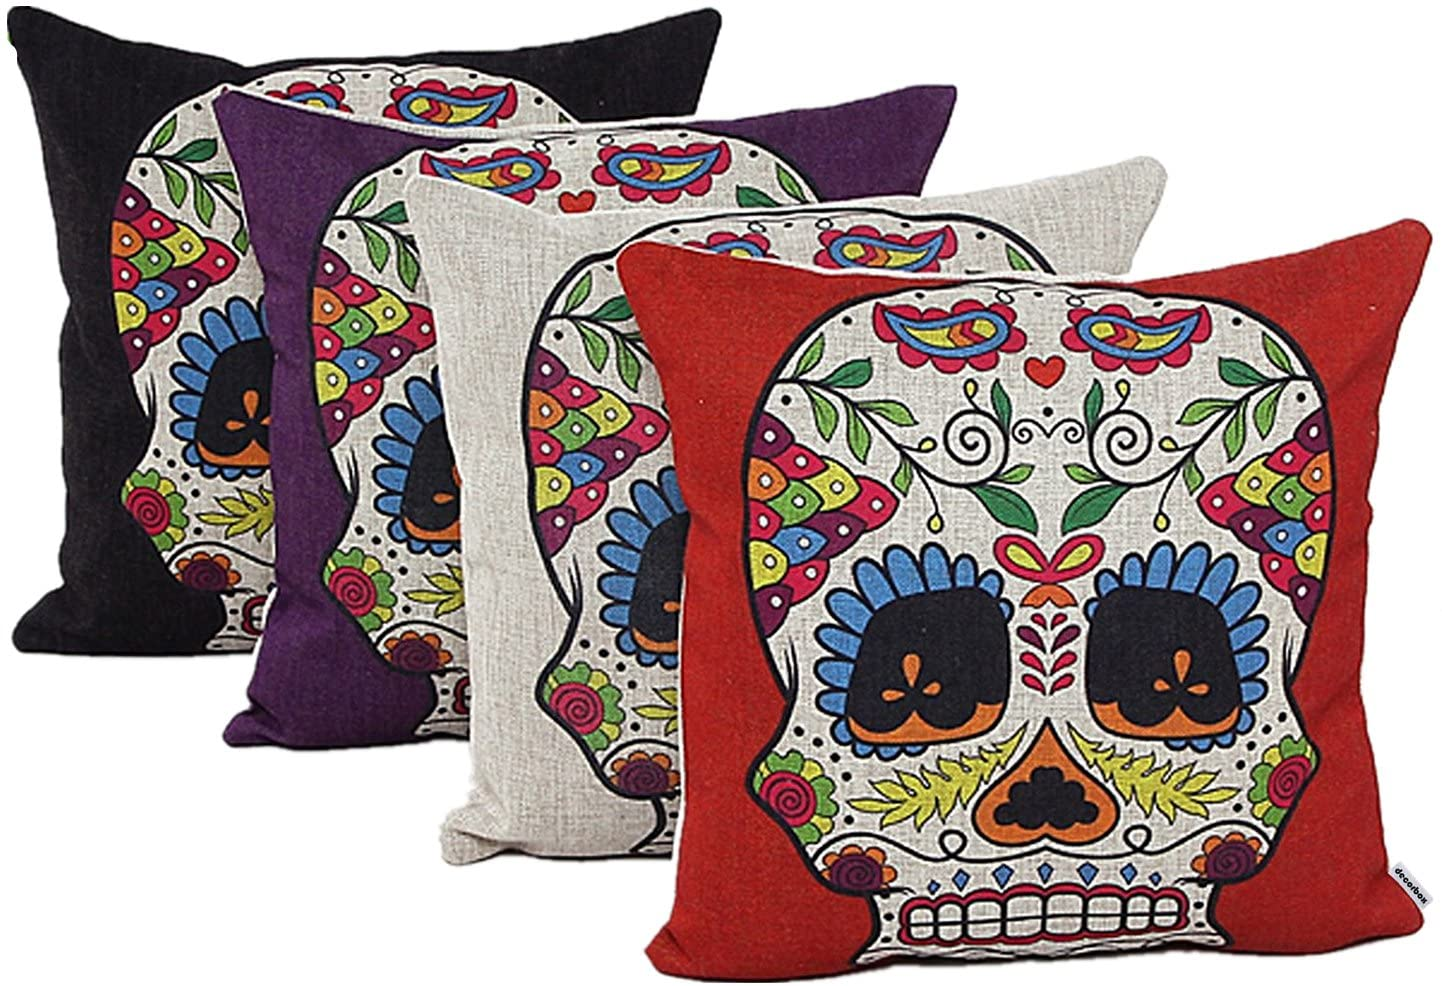 4 mexican pillow covers that should